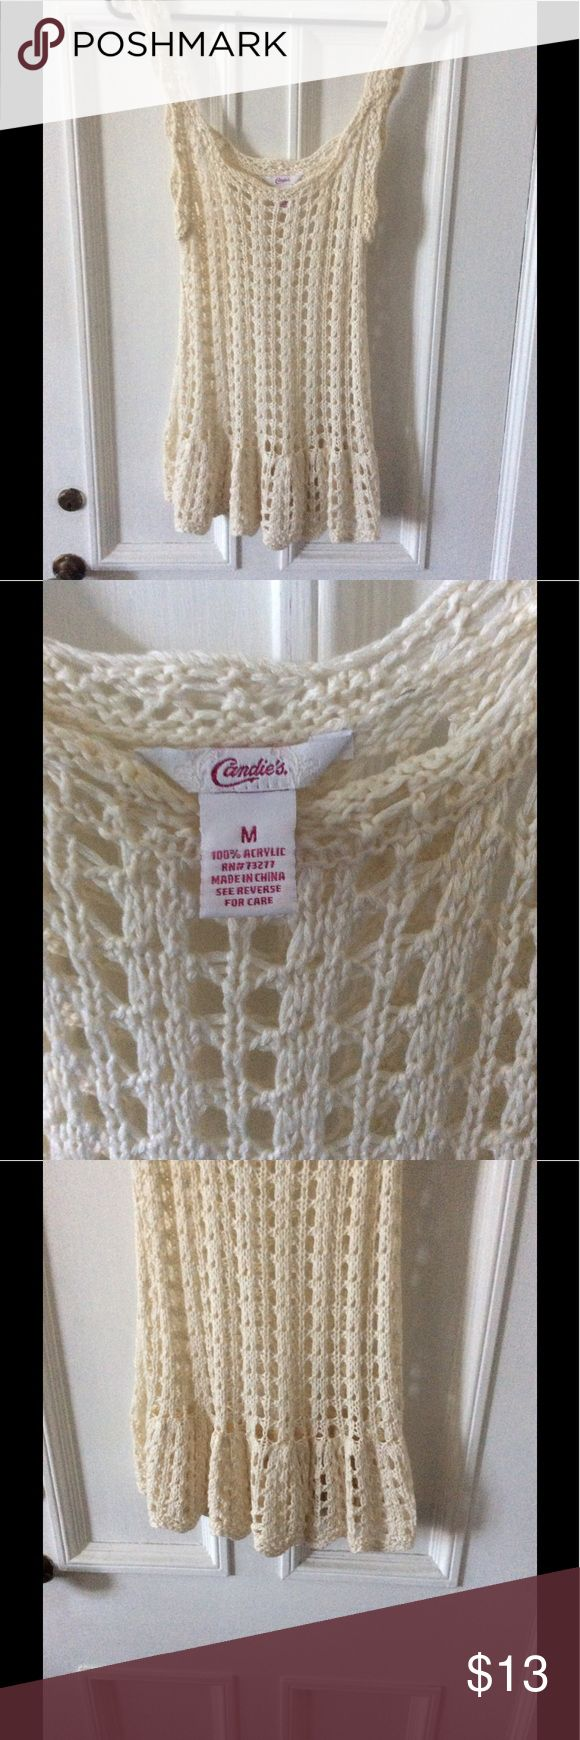 Candies crochet sweater tank M Super boho sweater tank with ruffled drop waist and scoop neck.  Layer it, wear it with a nude bandeau, or wear as a swim cover.  EUC! Candie's Tops Tank Tops